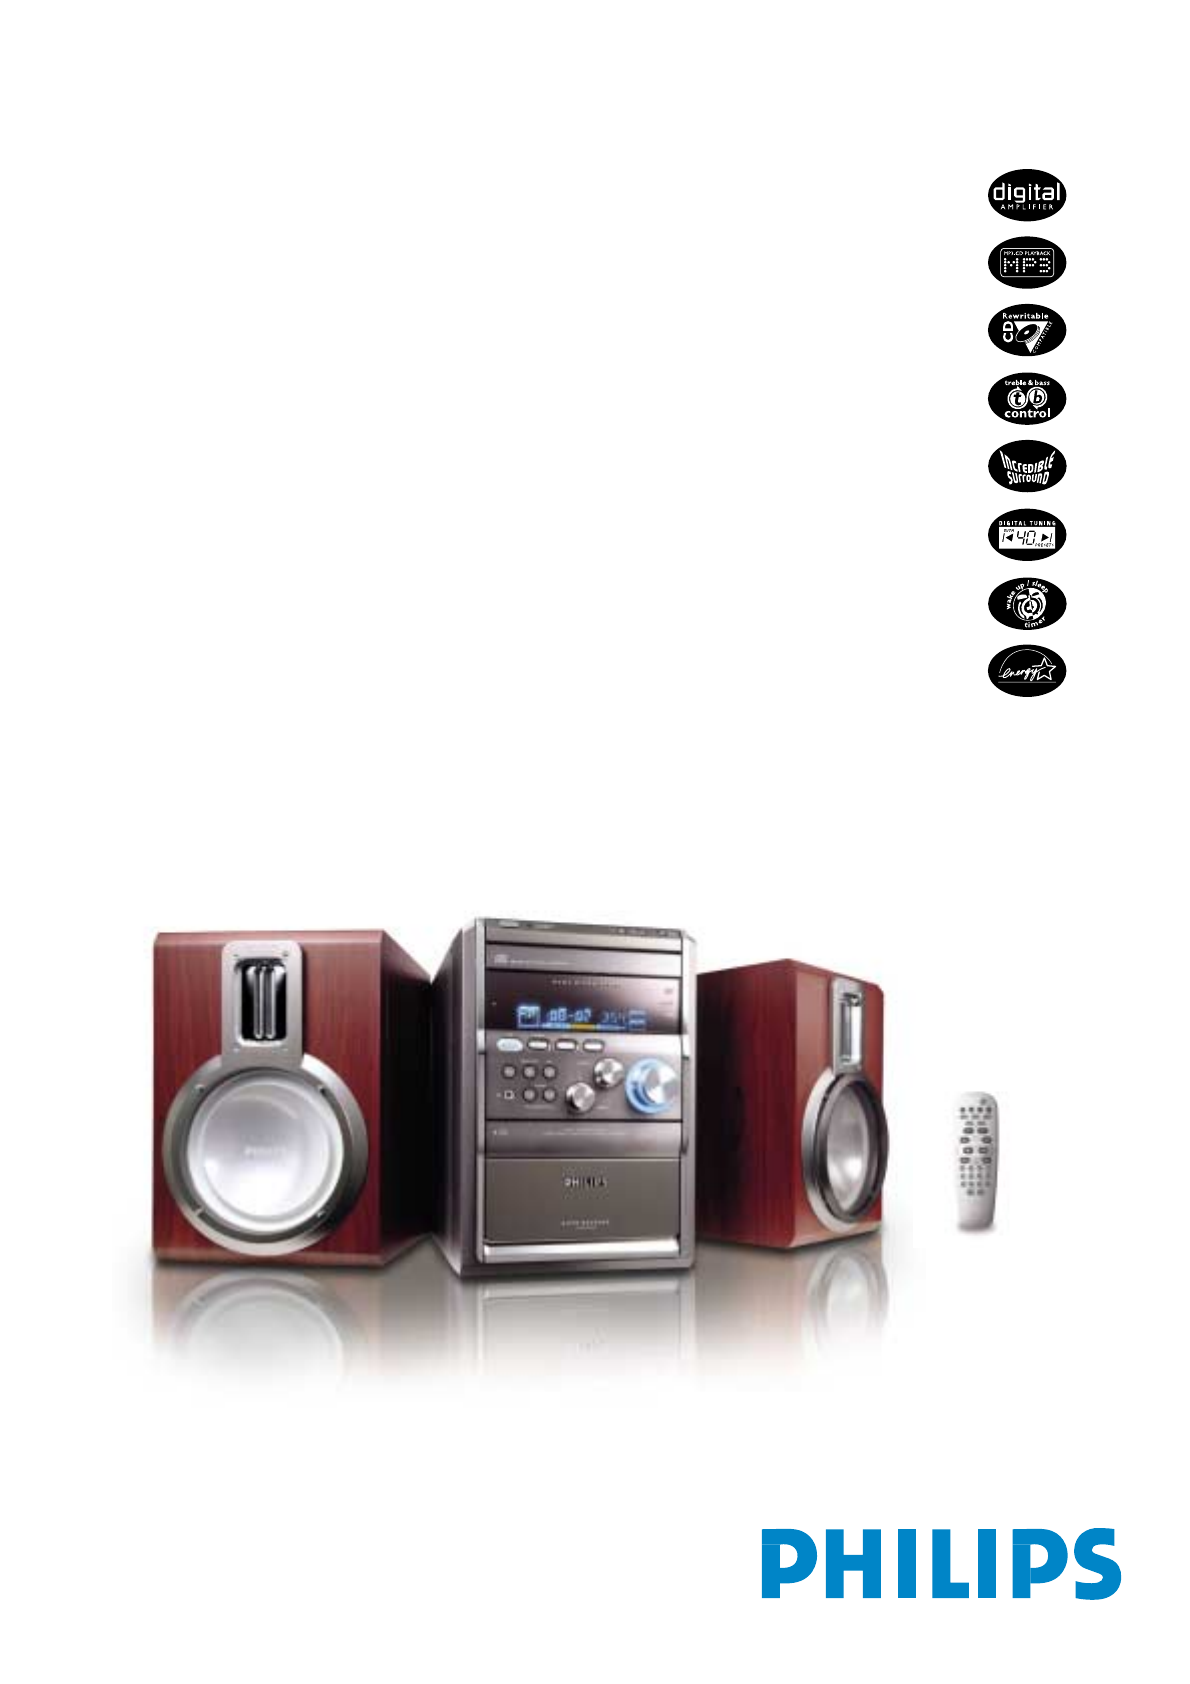 philips stereo system mcm8 33 user guide manualsonline com rh audio manualsonline com Philips User Guides Speaker Bt7900 Philips Ultrasound User Manuals